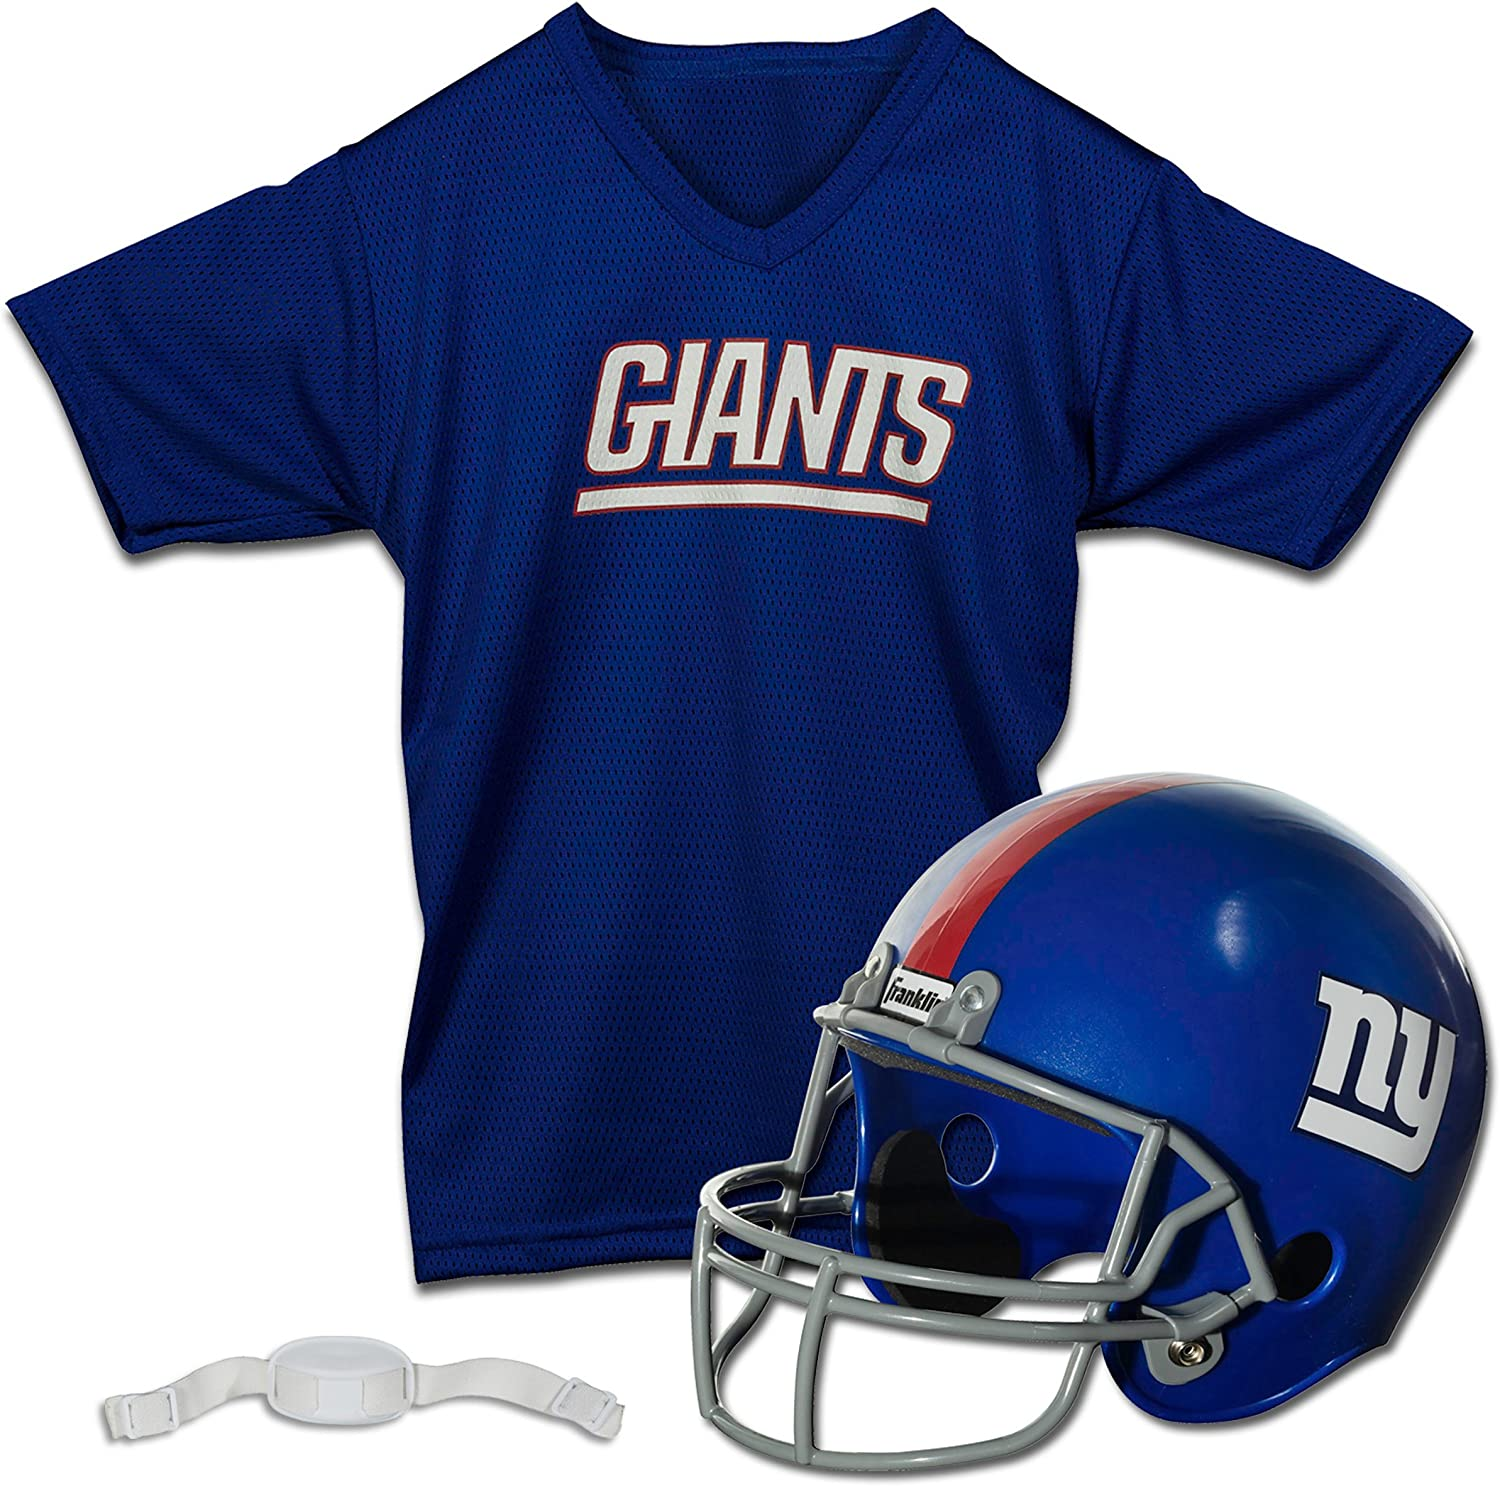 Youth M Franklin Sports New York Giants Kids Football Helmet and Jersey Set Chinstrap NFL Youth Football Uniform Costume Jersey Helmet